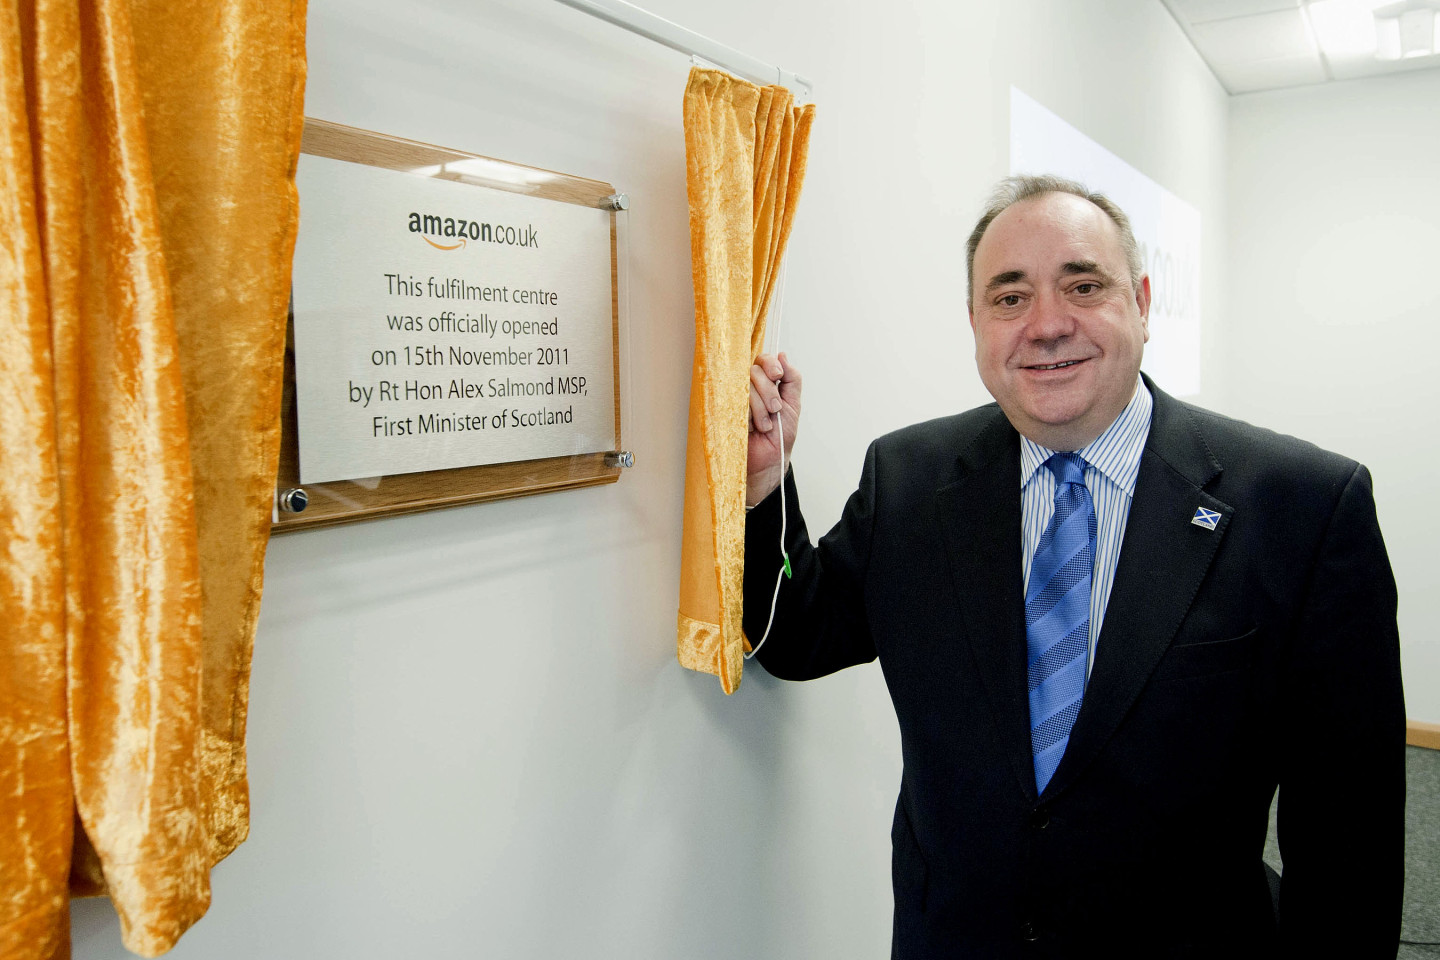 Alex Salmond opens Amazon fulfilment centre in Dunfermline